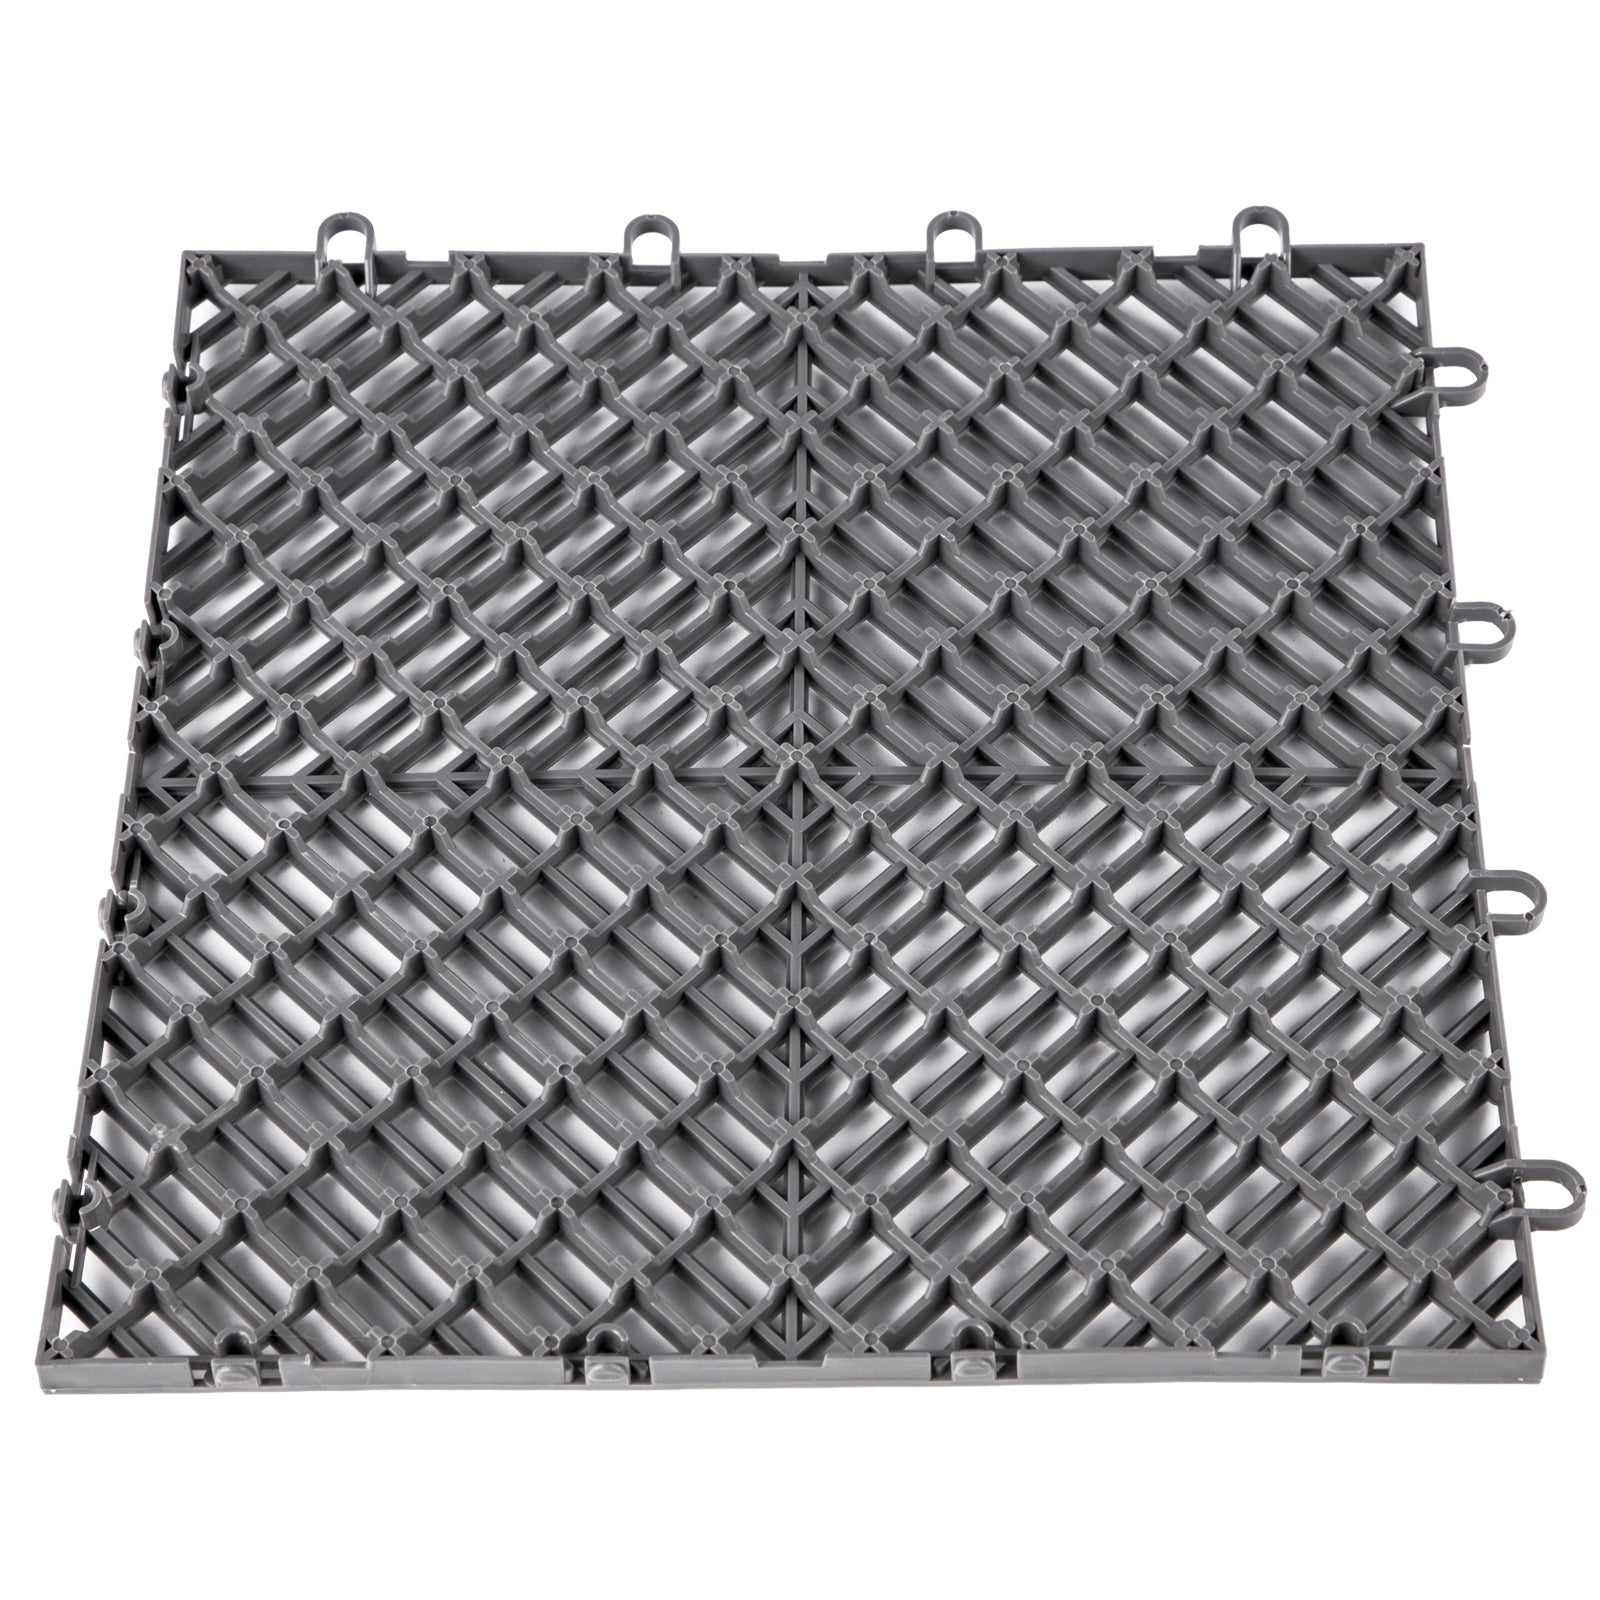 Rubber Tiles Interlocking Garage Floor Tiles 12x12x0.5 Inch 55pcs Deck Tile Gray